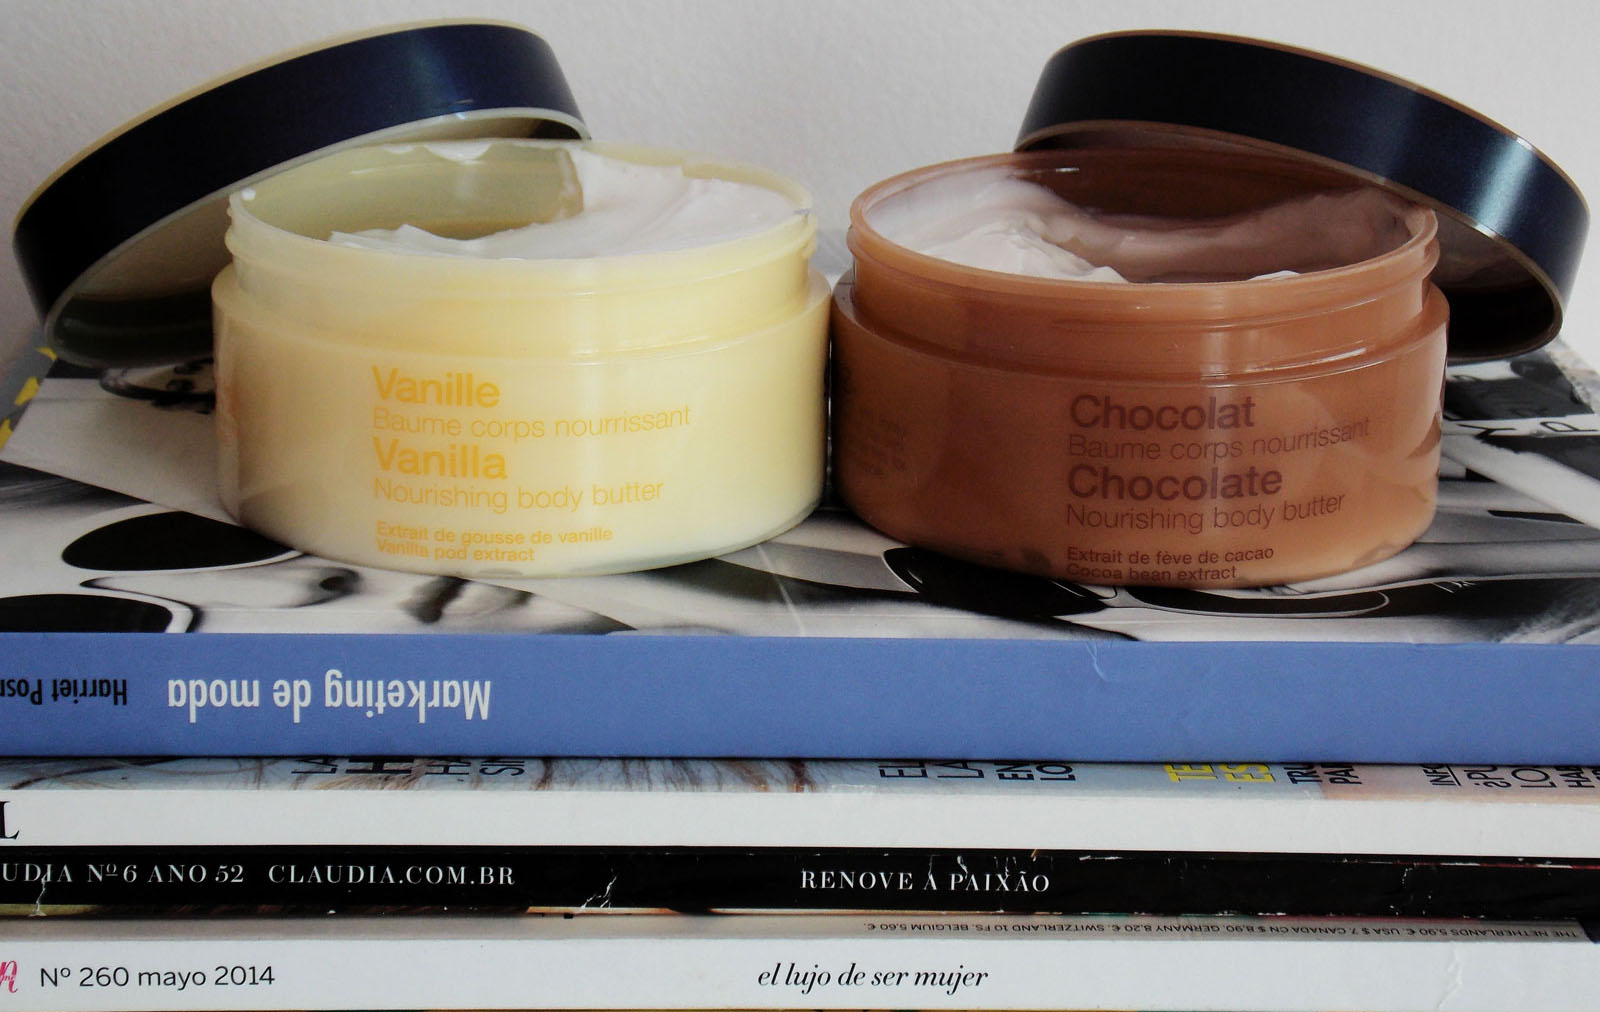 Sephora-nourishing-body-butters-Tulips-and-Heels-blog